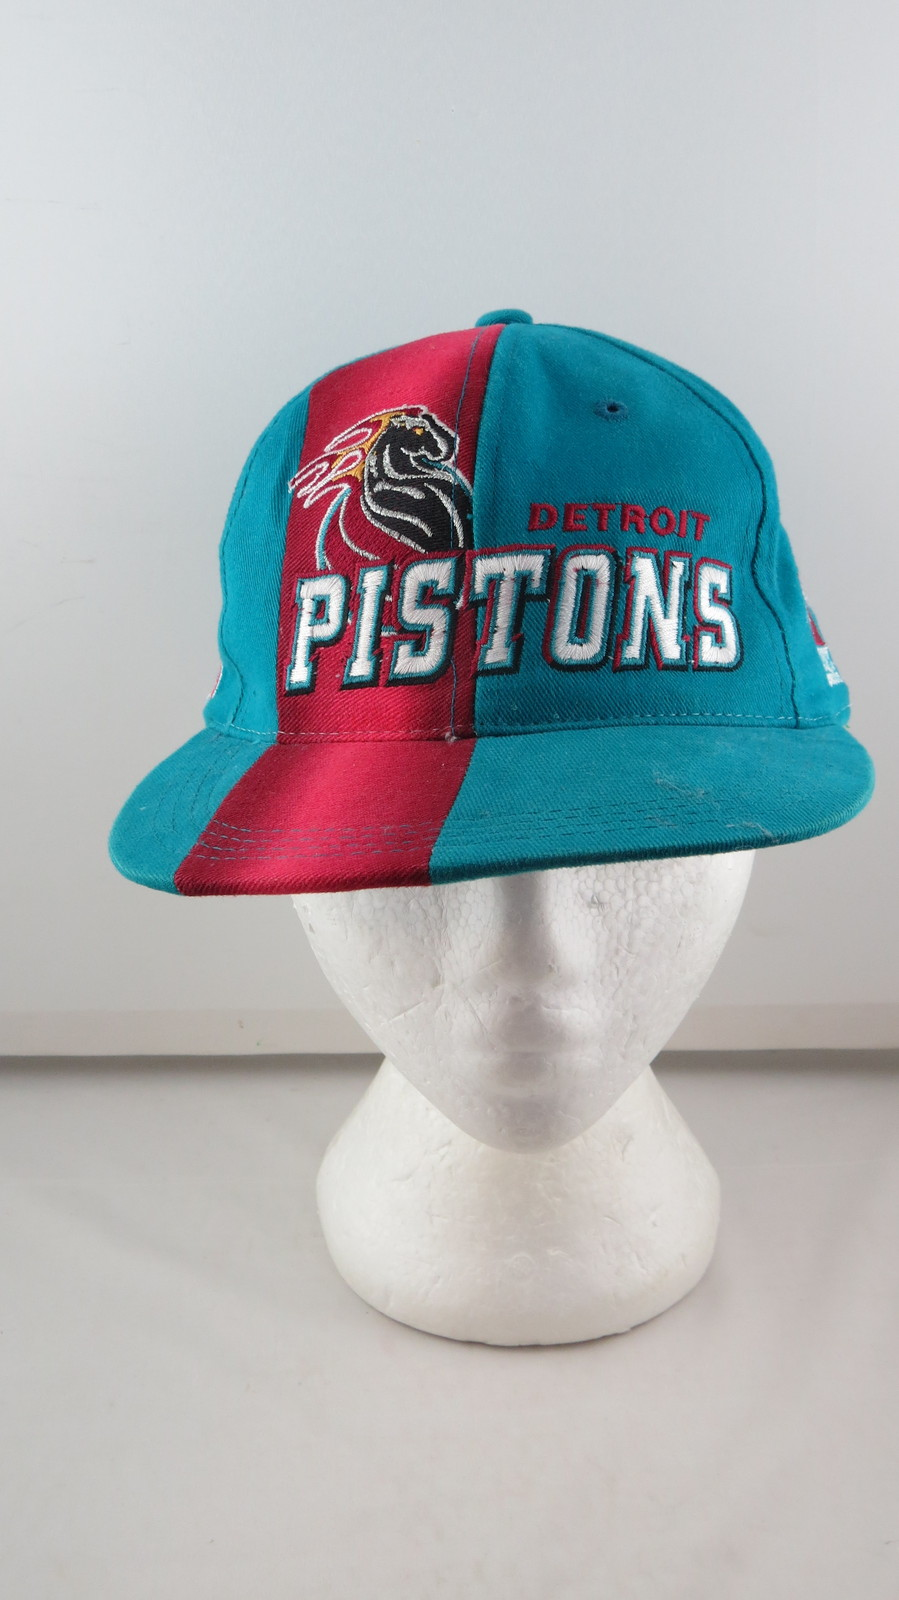 Detroit Pistions Hat (VTG) - Sports Specialties 1997 Draft Day - Adult Snapback